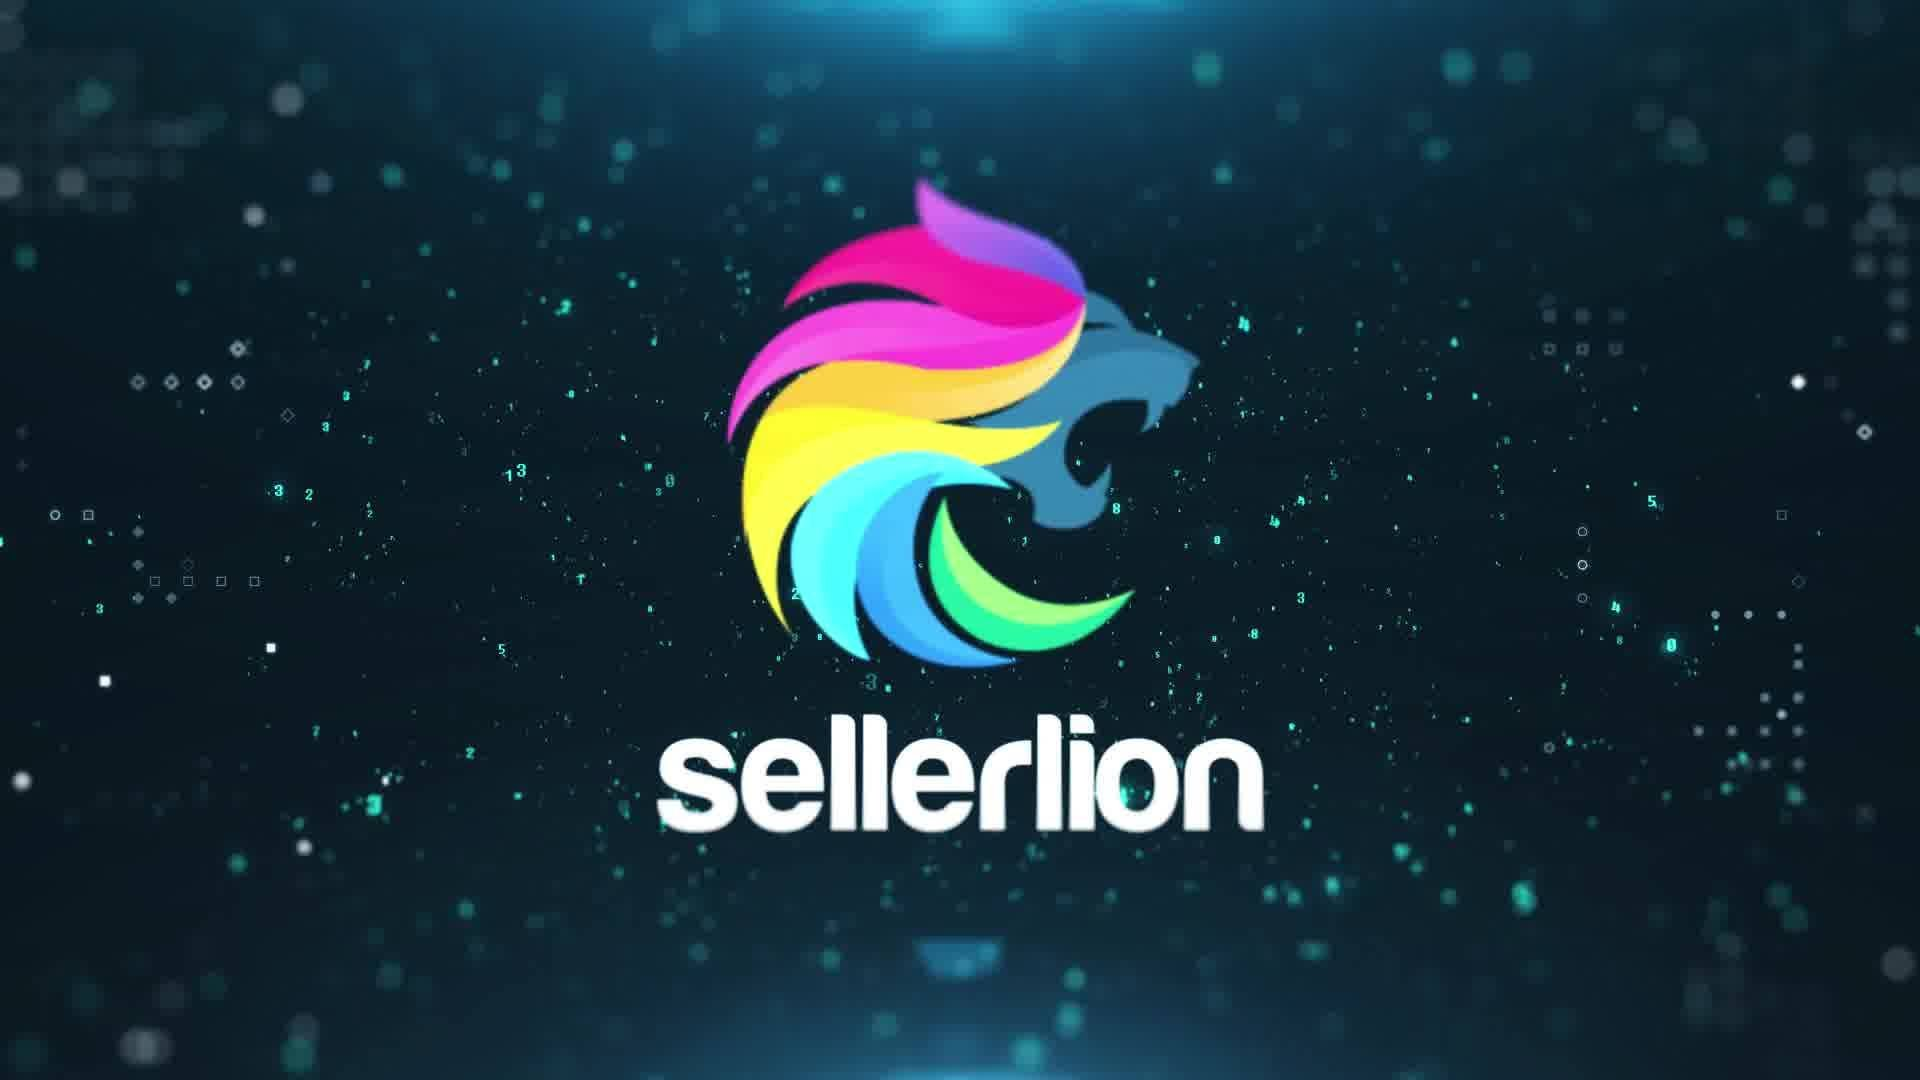 SellerLion.jpg